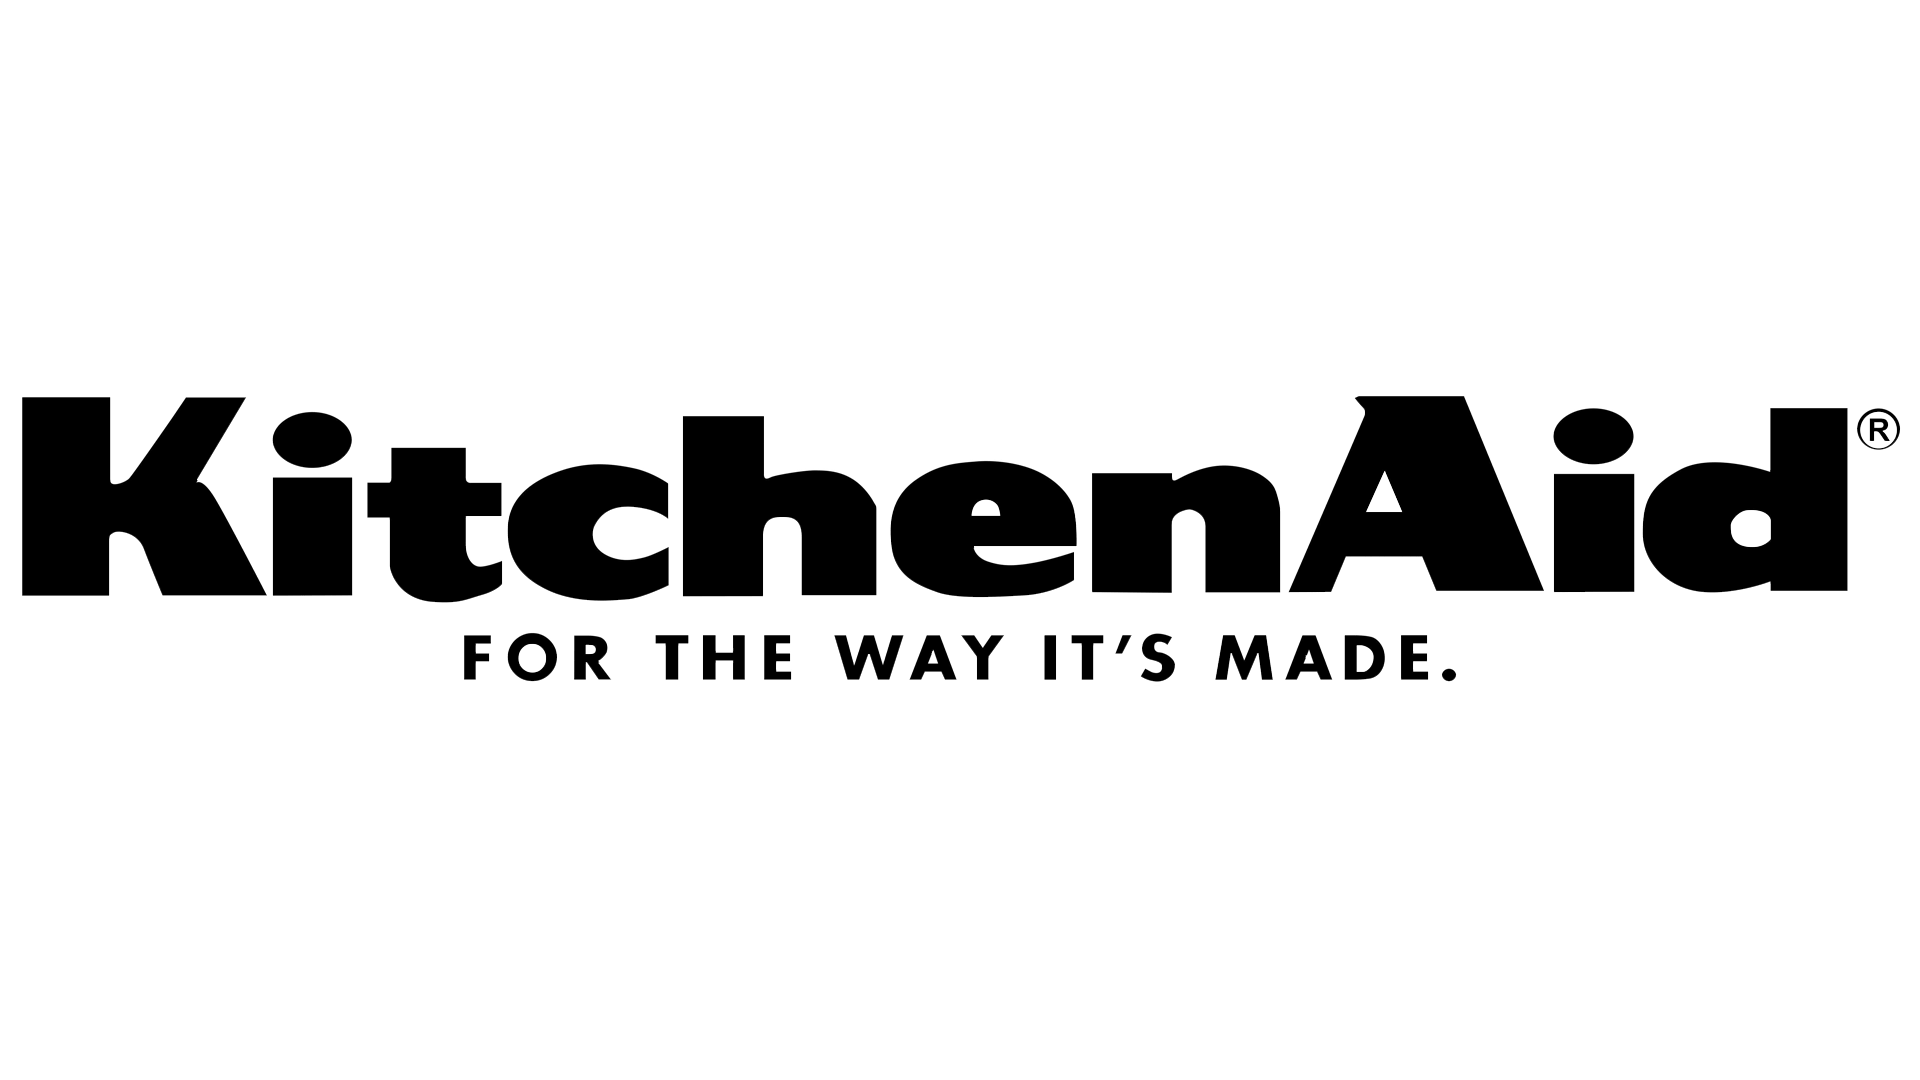 KitchenAid Logo - KitchenAid Logo, KitchenAid Symbol, Meaning, History and Evolution